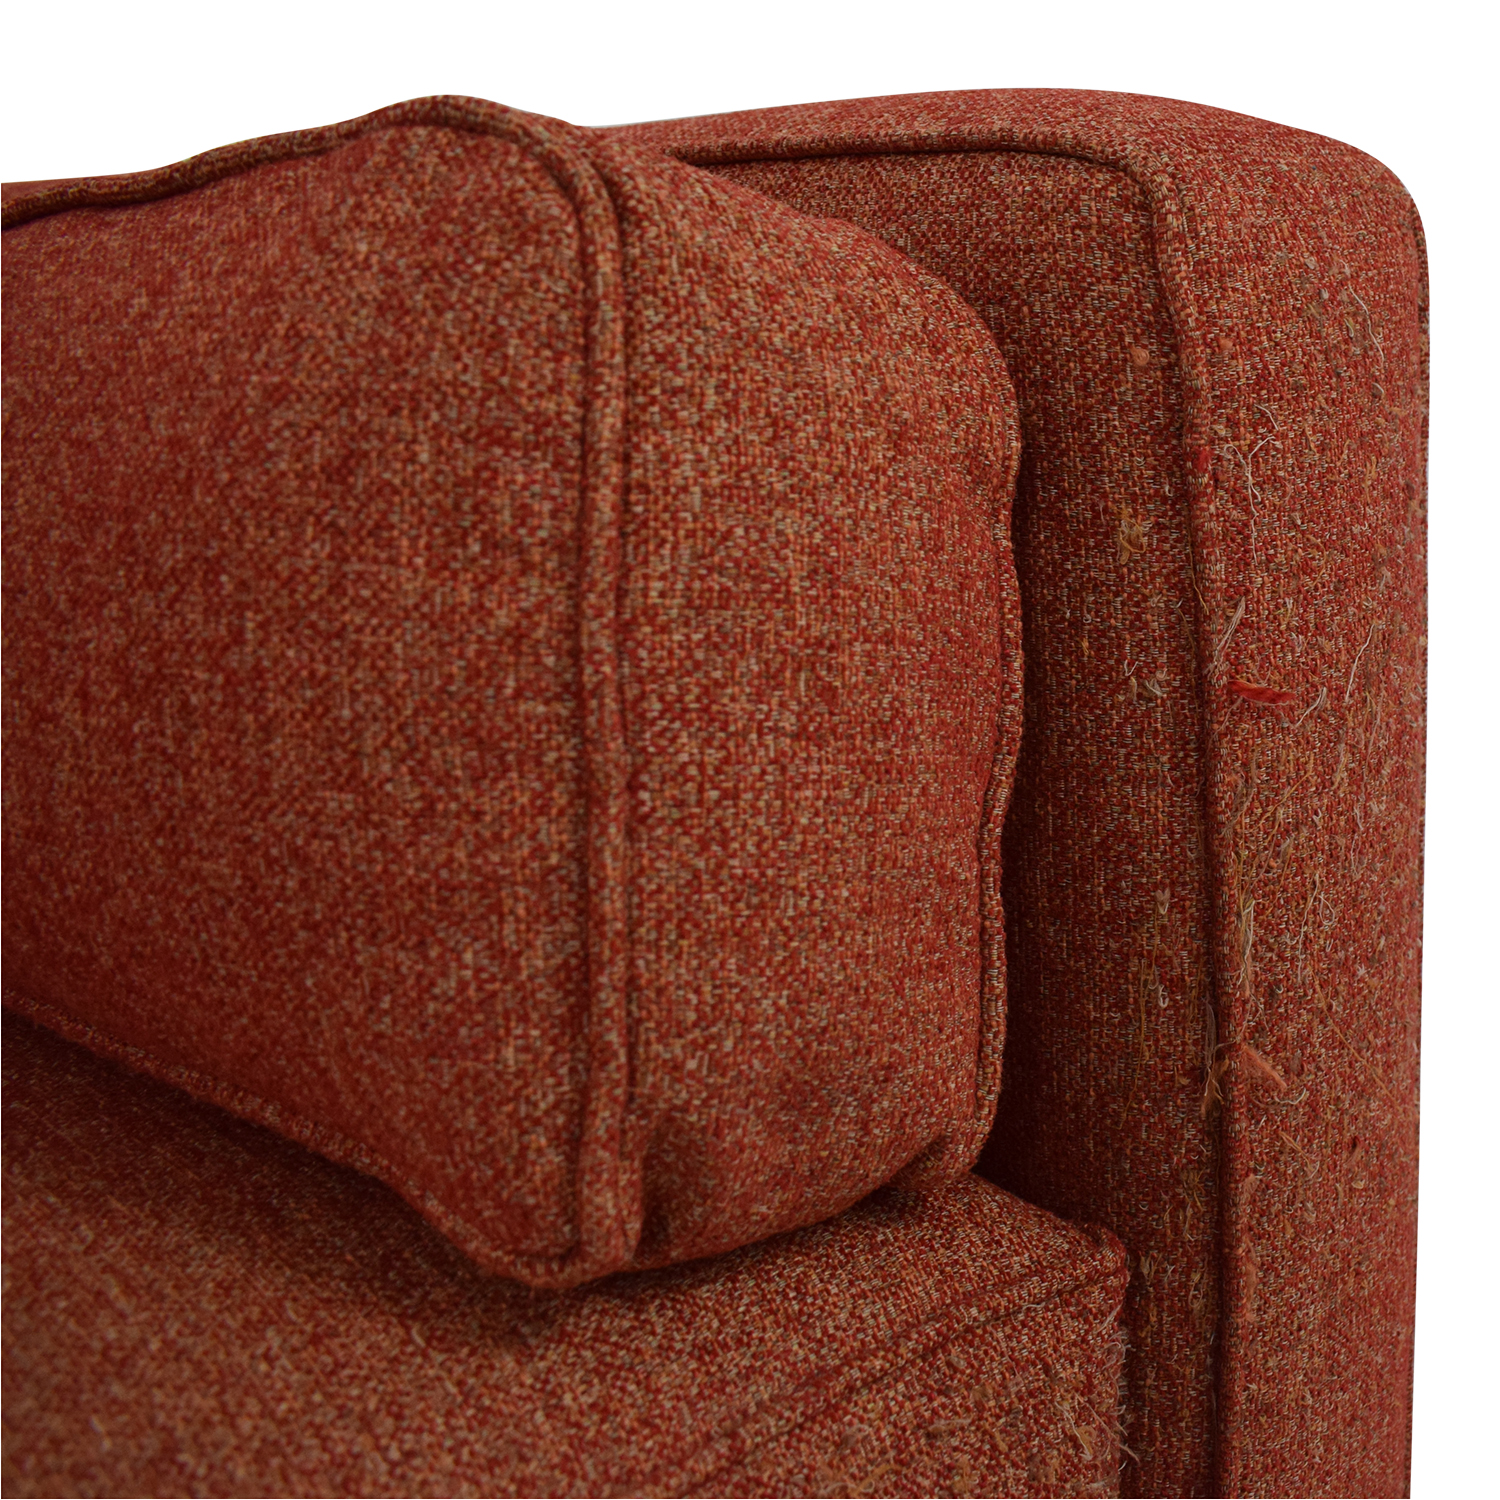 buy Younger Furniture Single Cushion Sofa Younger Furniture